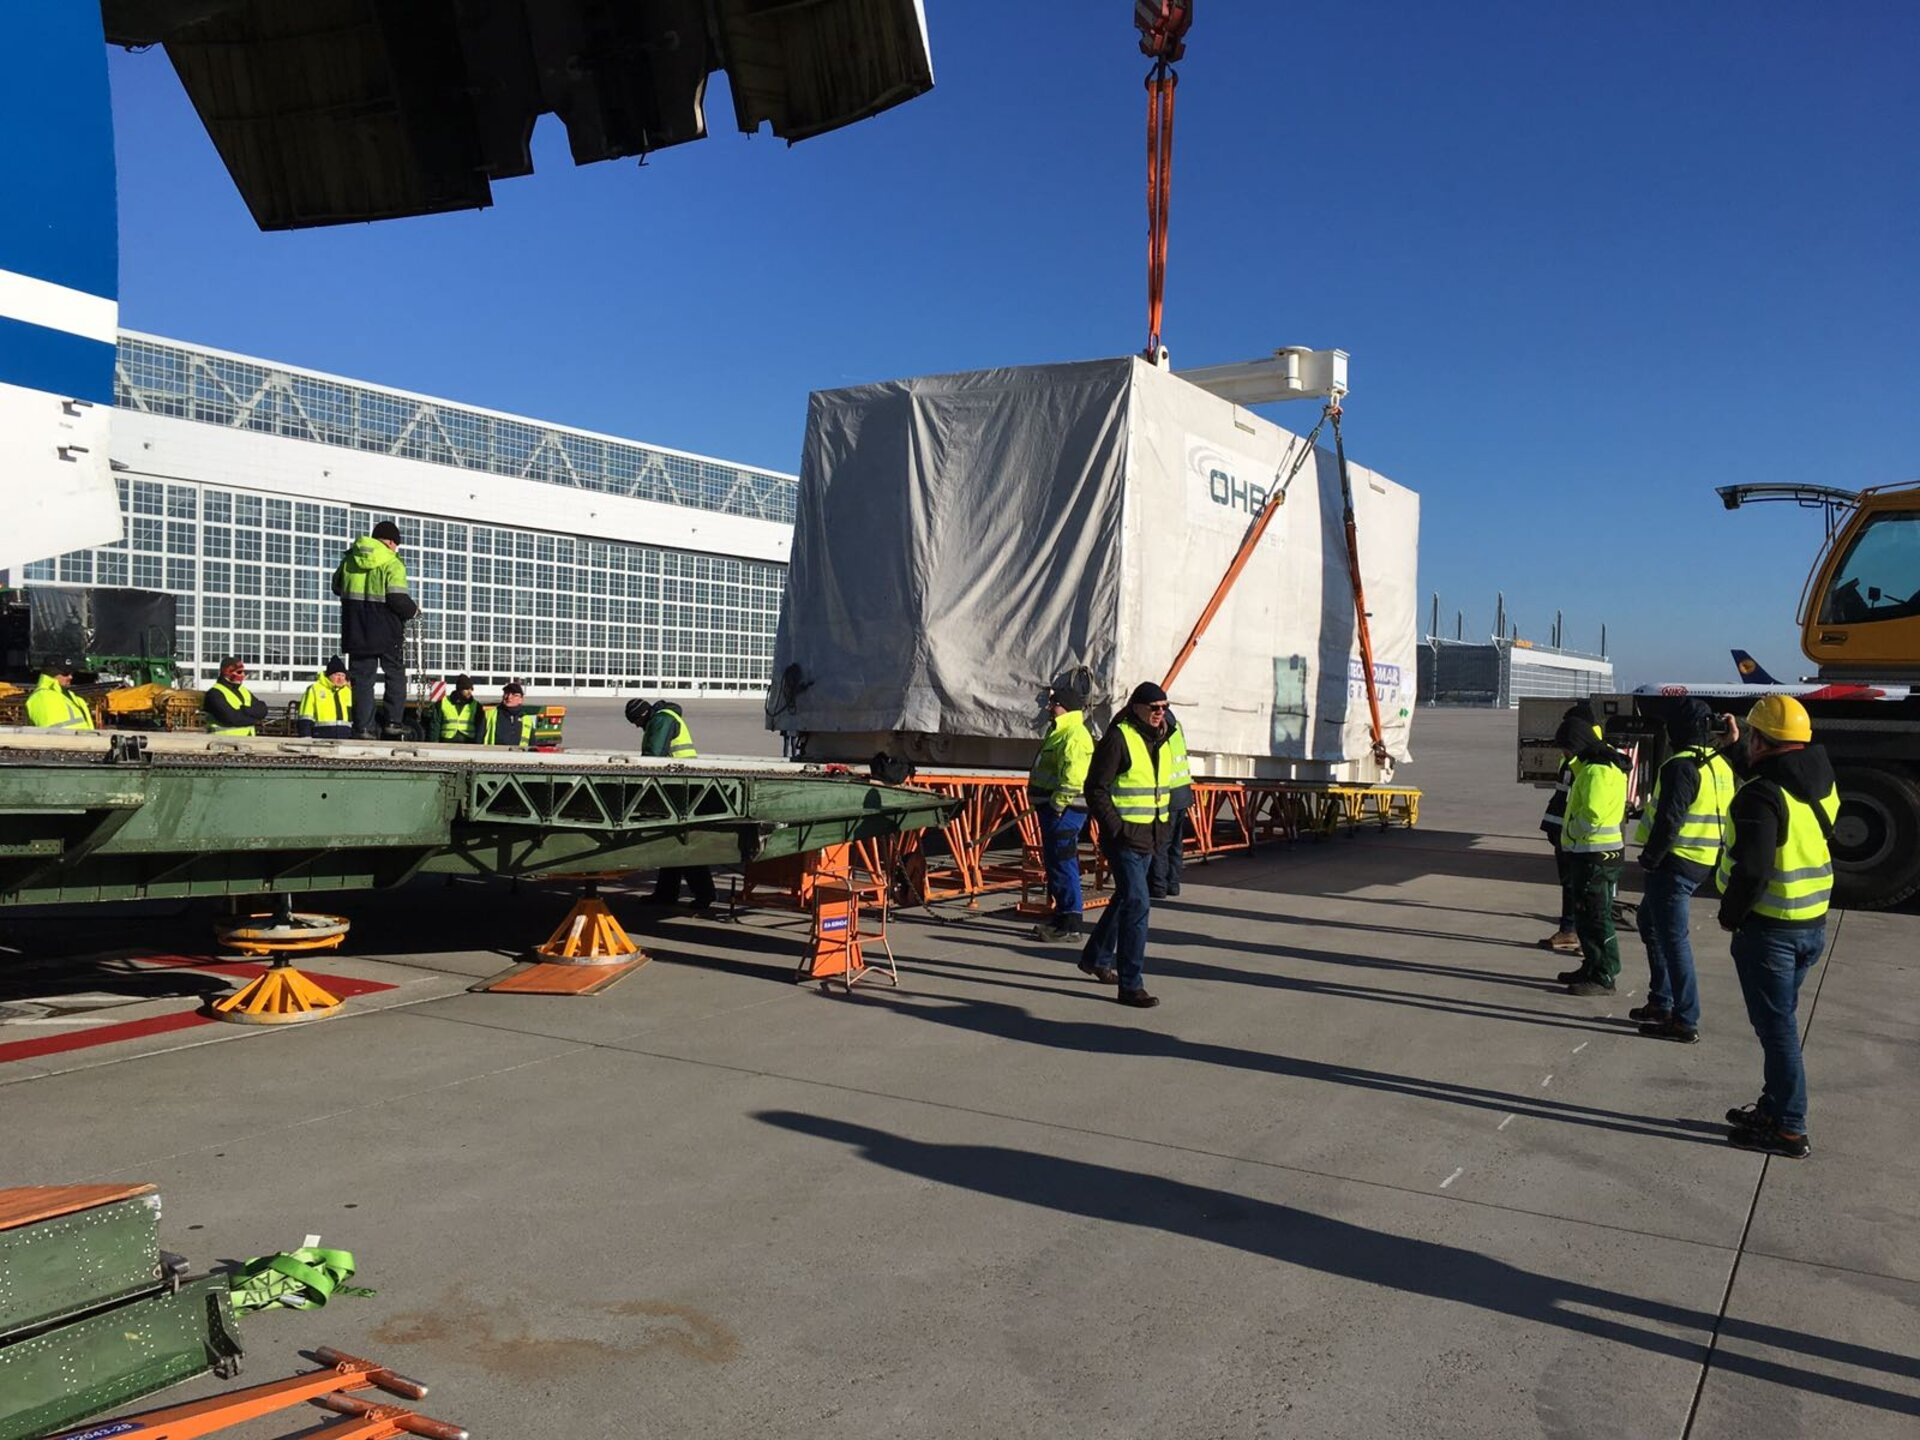 H36W-1 packed into the Antonov